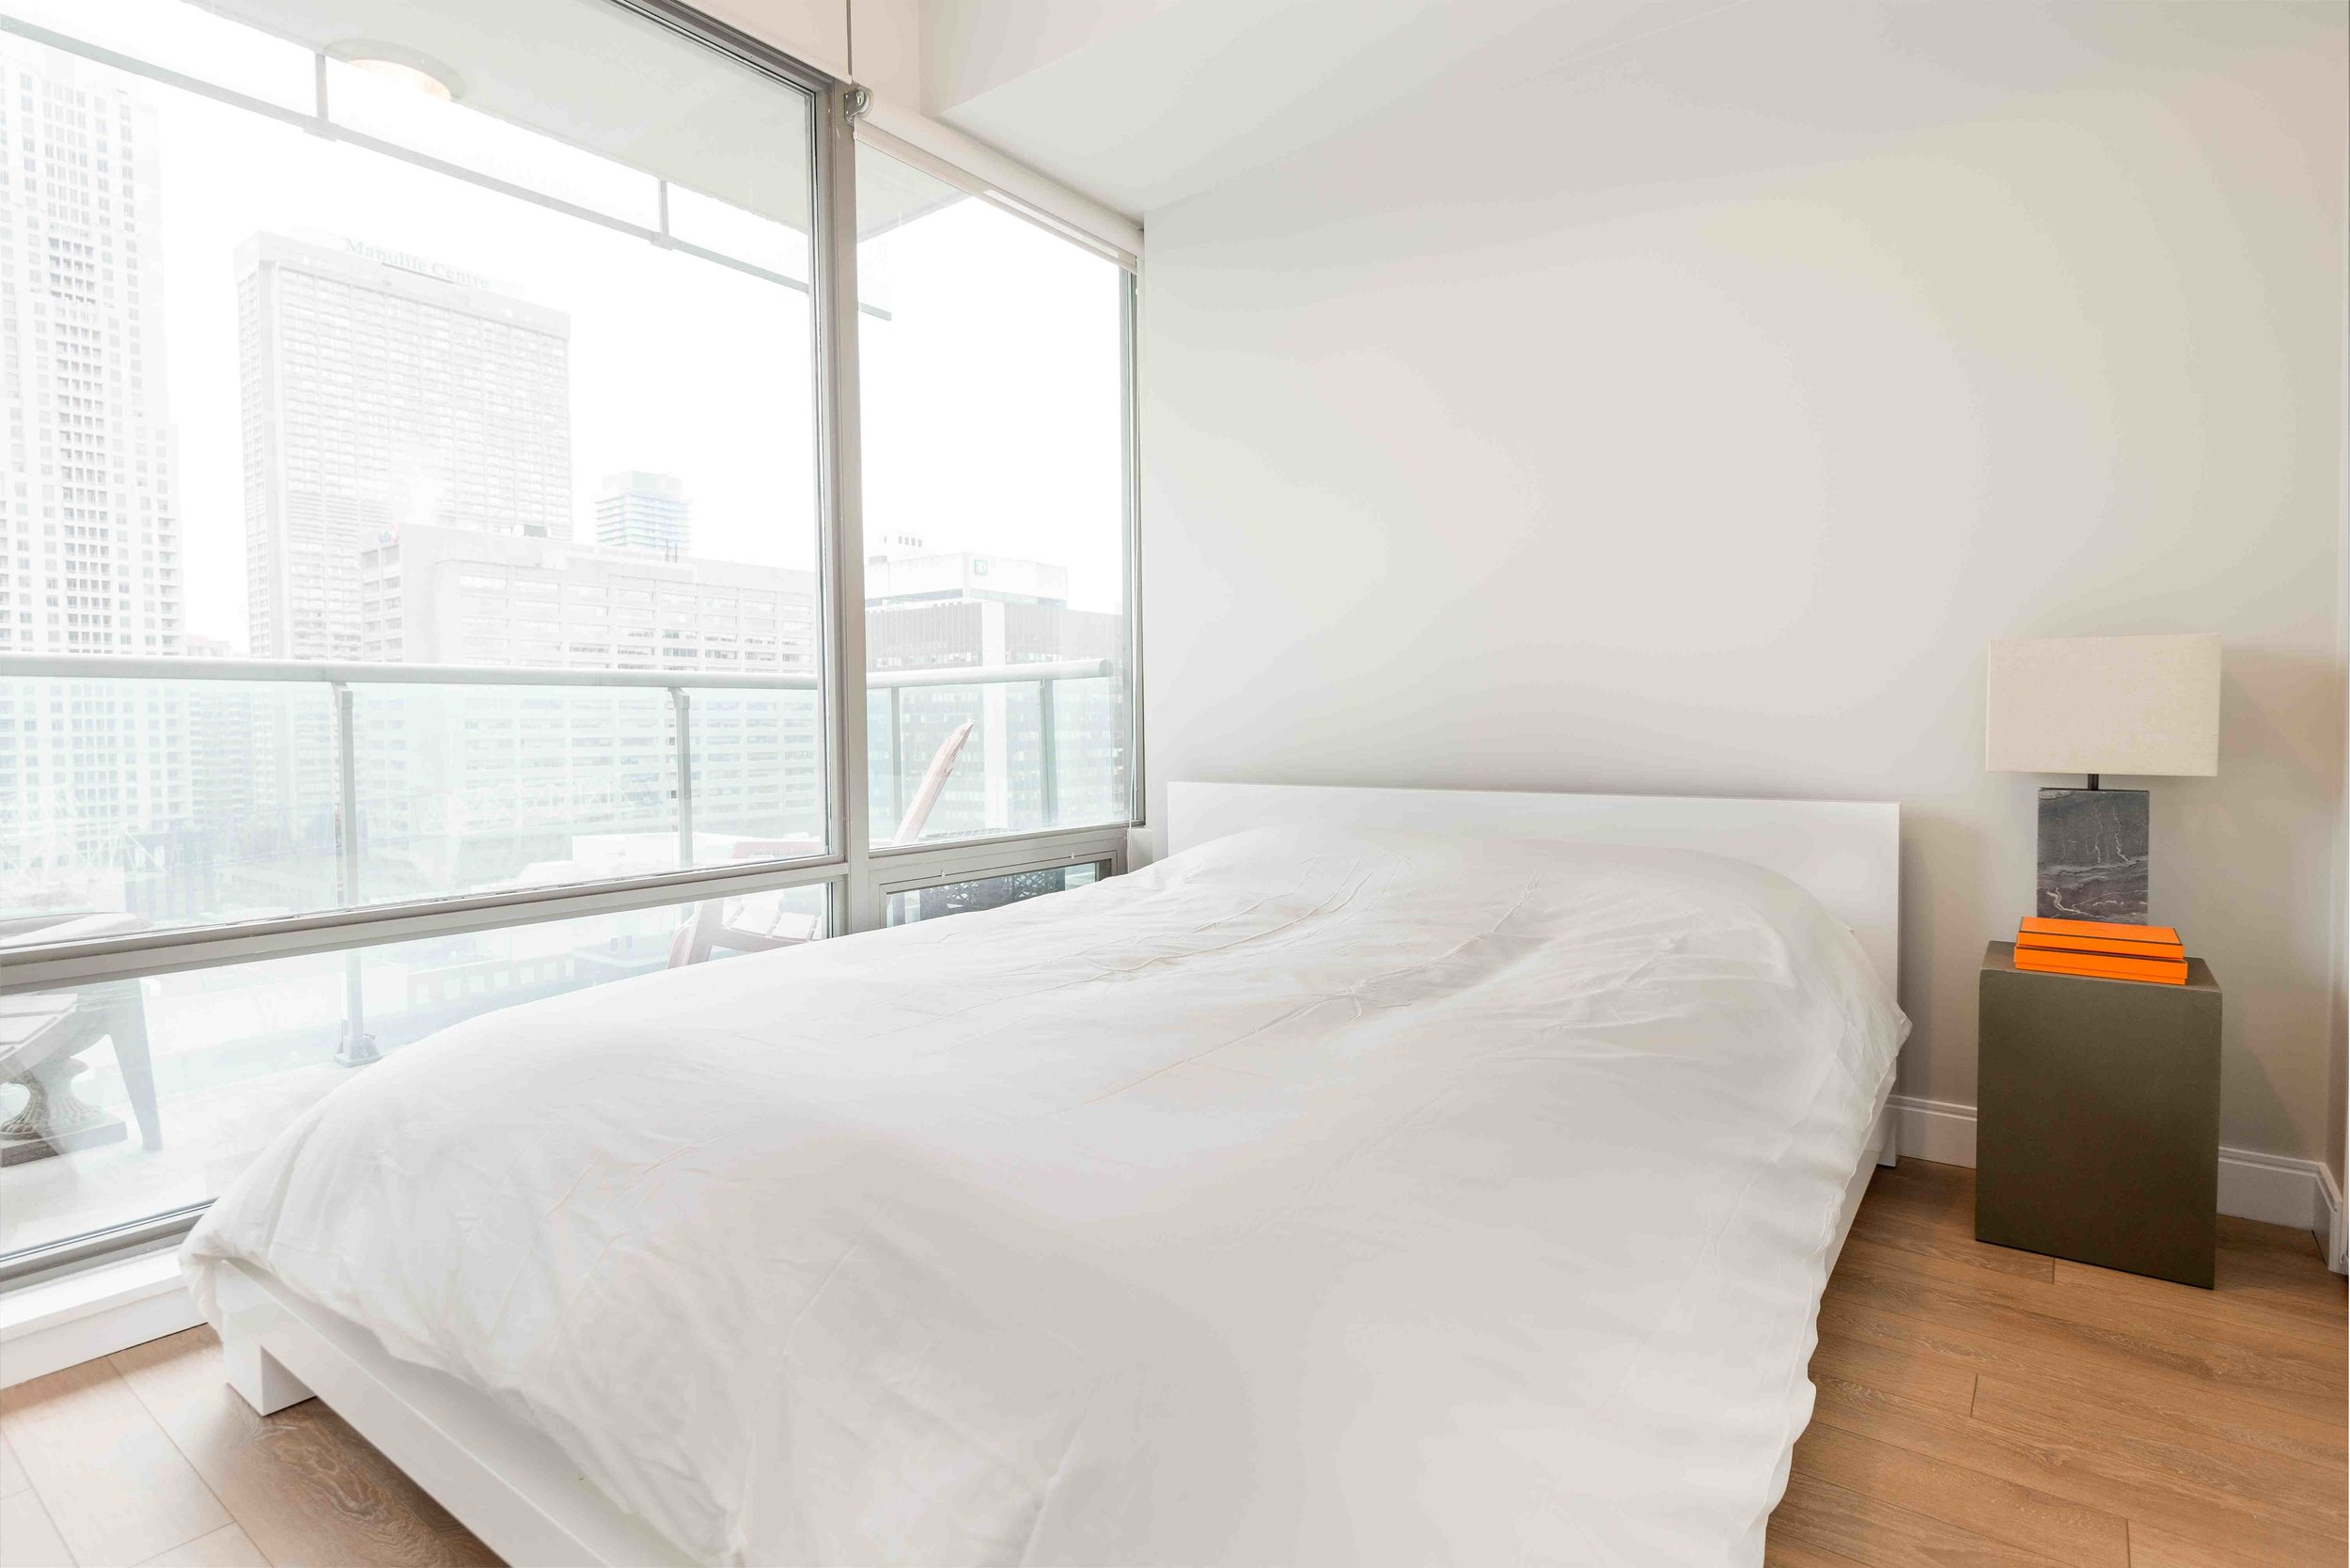 short term rentals Toronto Yorkville bedroom window